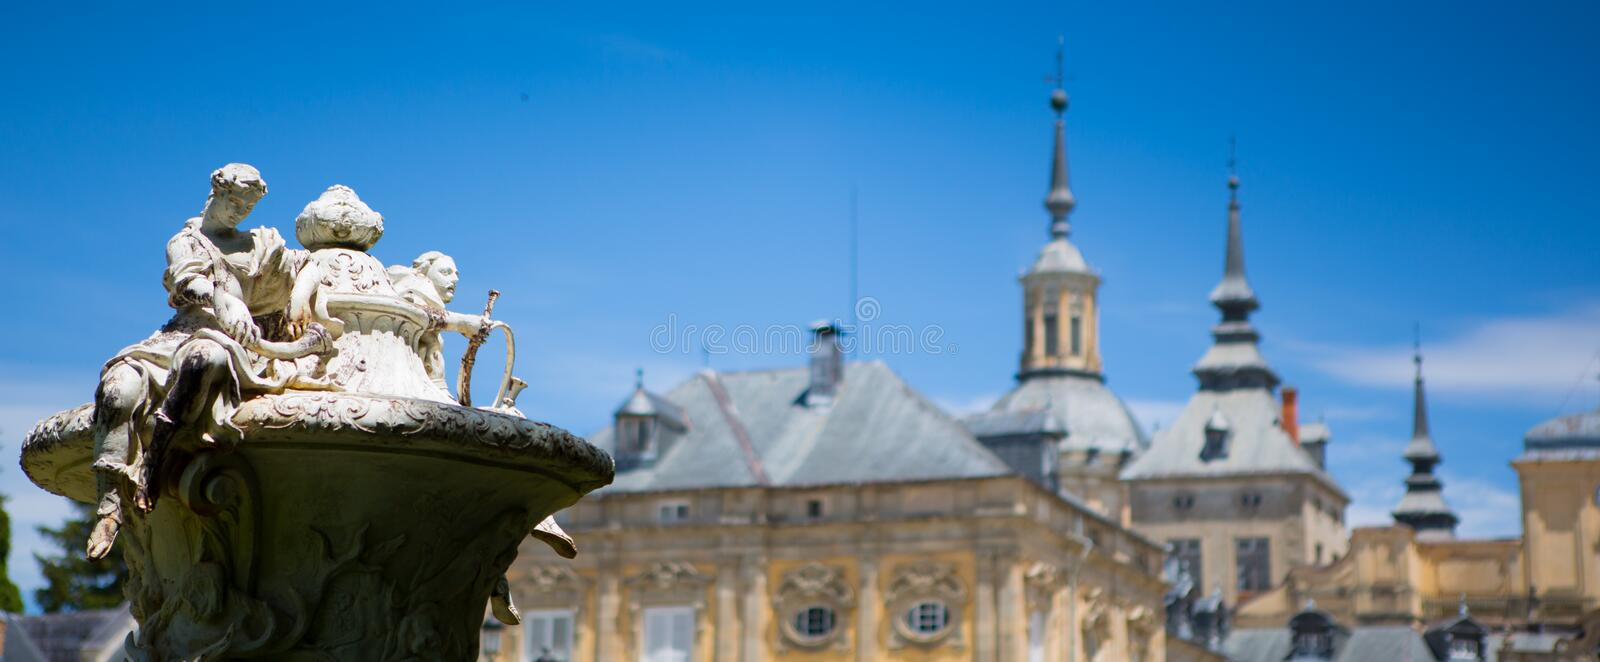 Sculpture on the castle view. San Ildefonso, La granja. Spain. royalty free stock photos